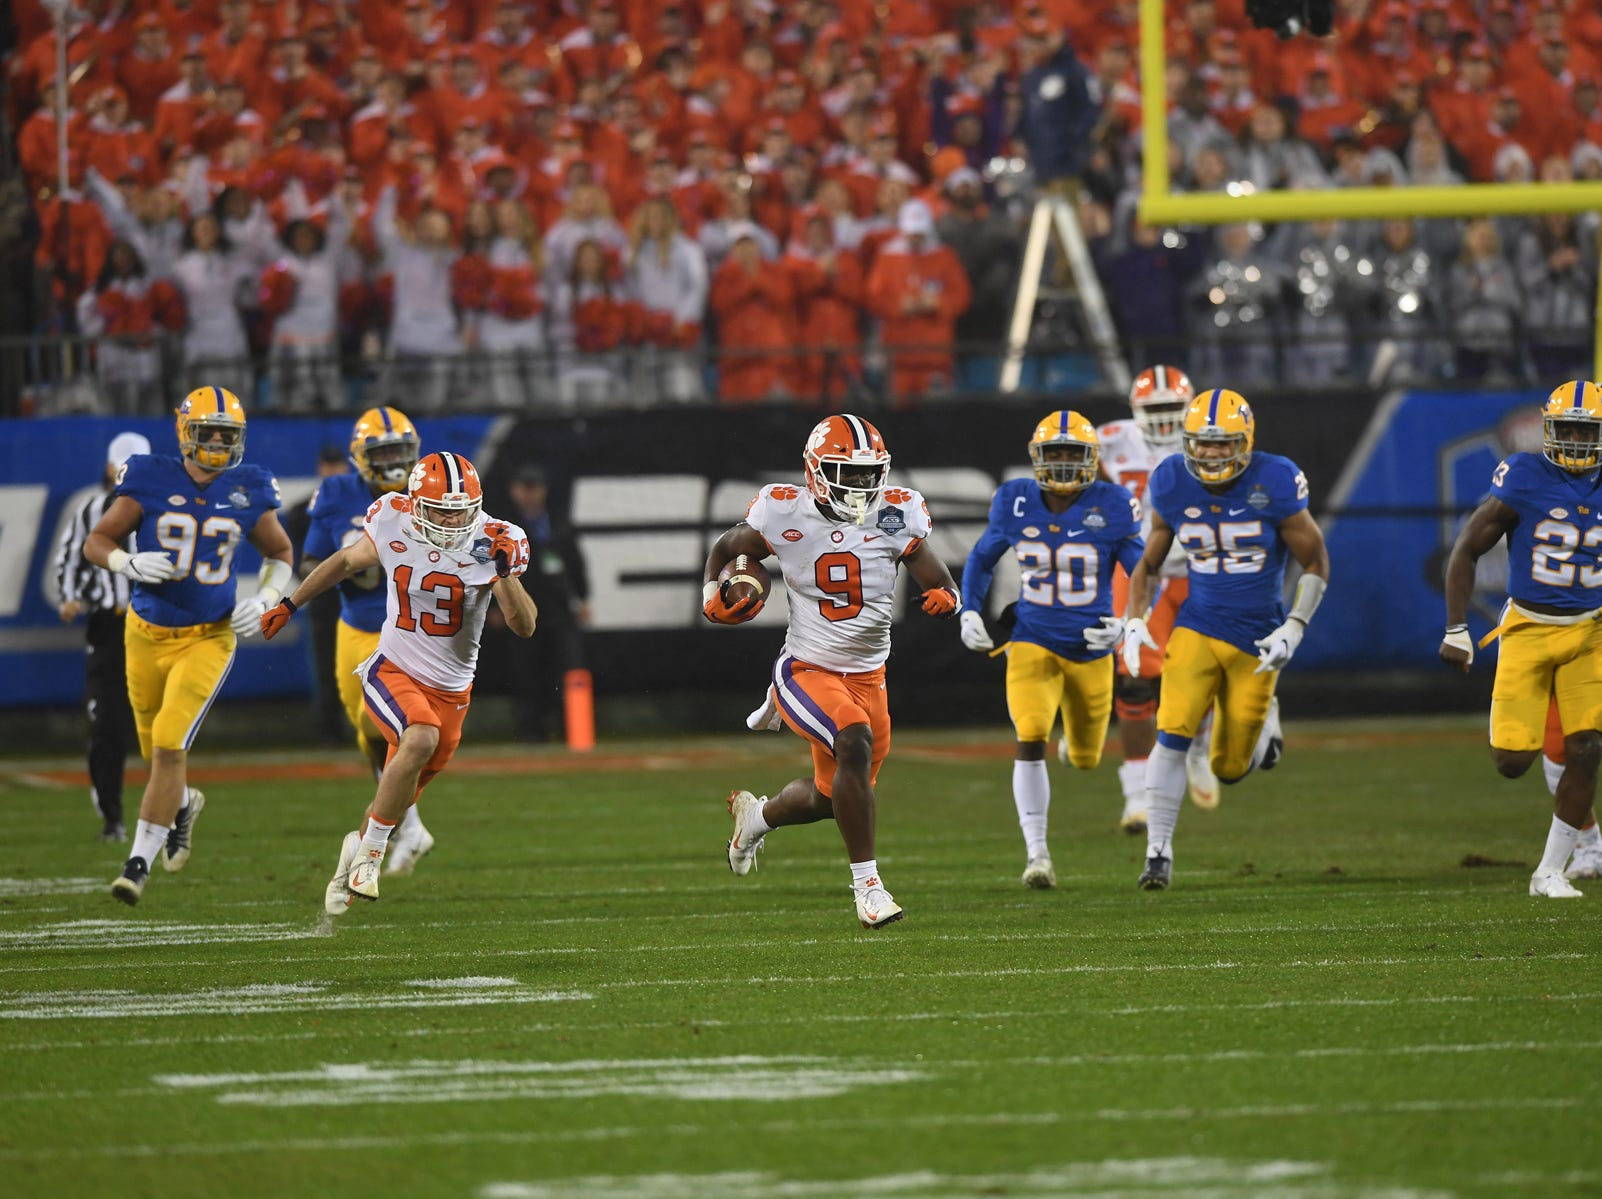 Clemson running back Travis Etienne (9) races 75 yards to score against Pittsburgh on the Tigers first play from scrimmage during the 1st quarter of the Dr. Pepper ACC Championship at Bank of America Stadium in Charlotte, N.C. Saturday, December 1, 2018.